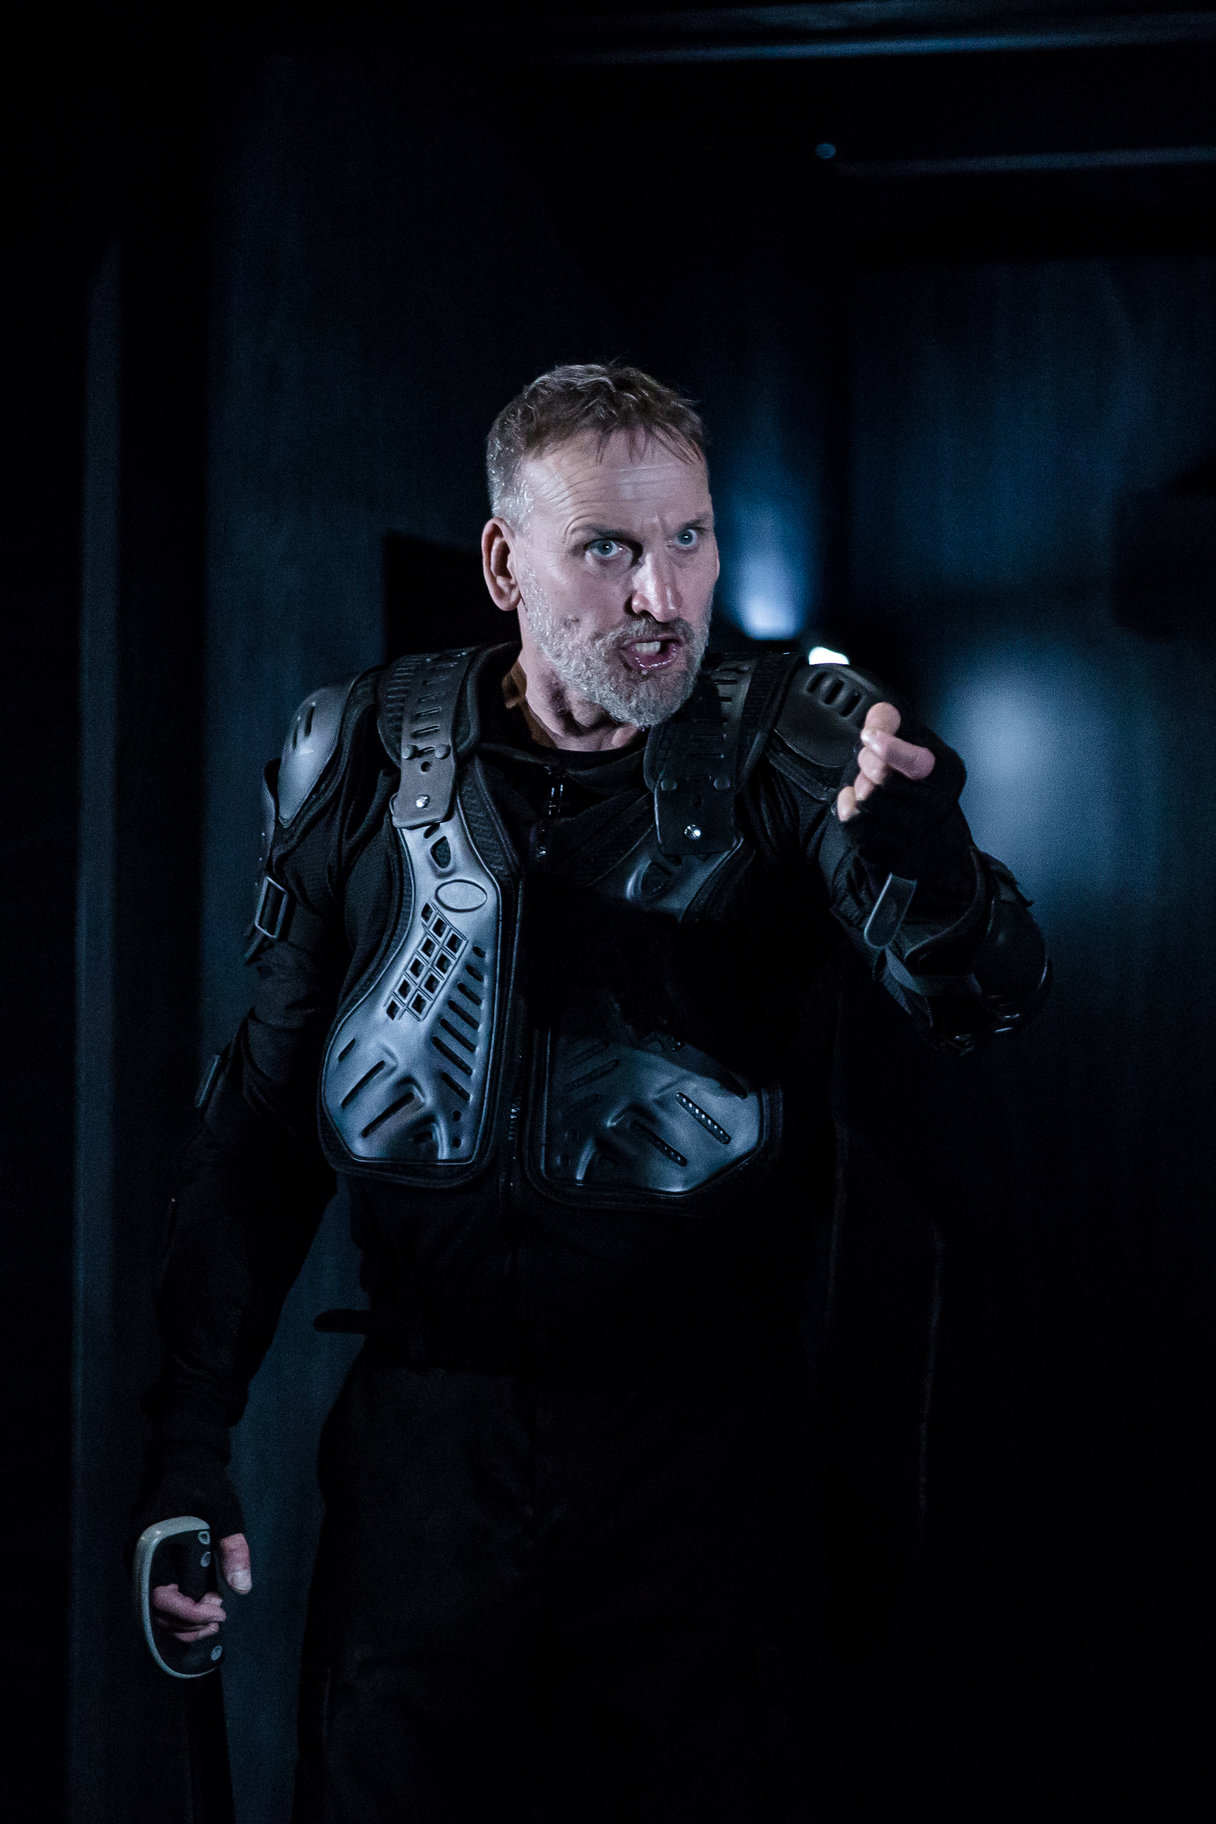 Macbeth in body armour.